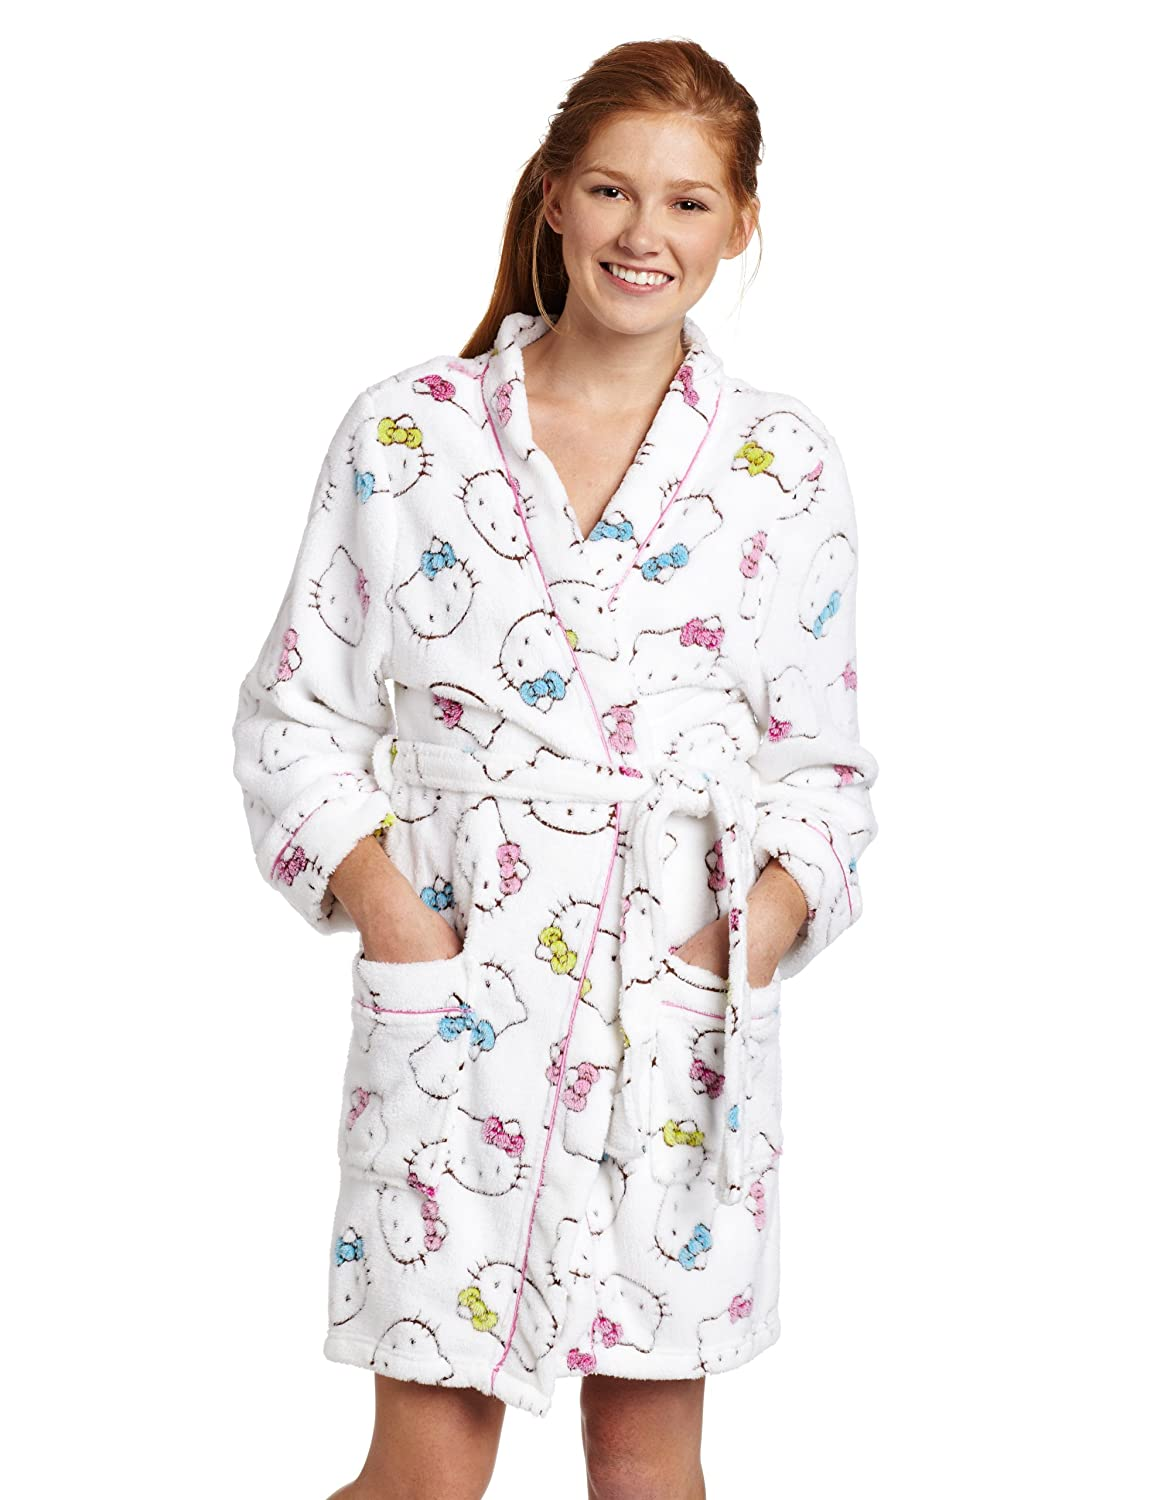 0b3bdb018 Hello Kitty Women's Burn Out Robe at Amazon Women's Clothing store:  Bathrobes